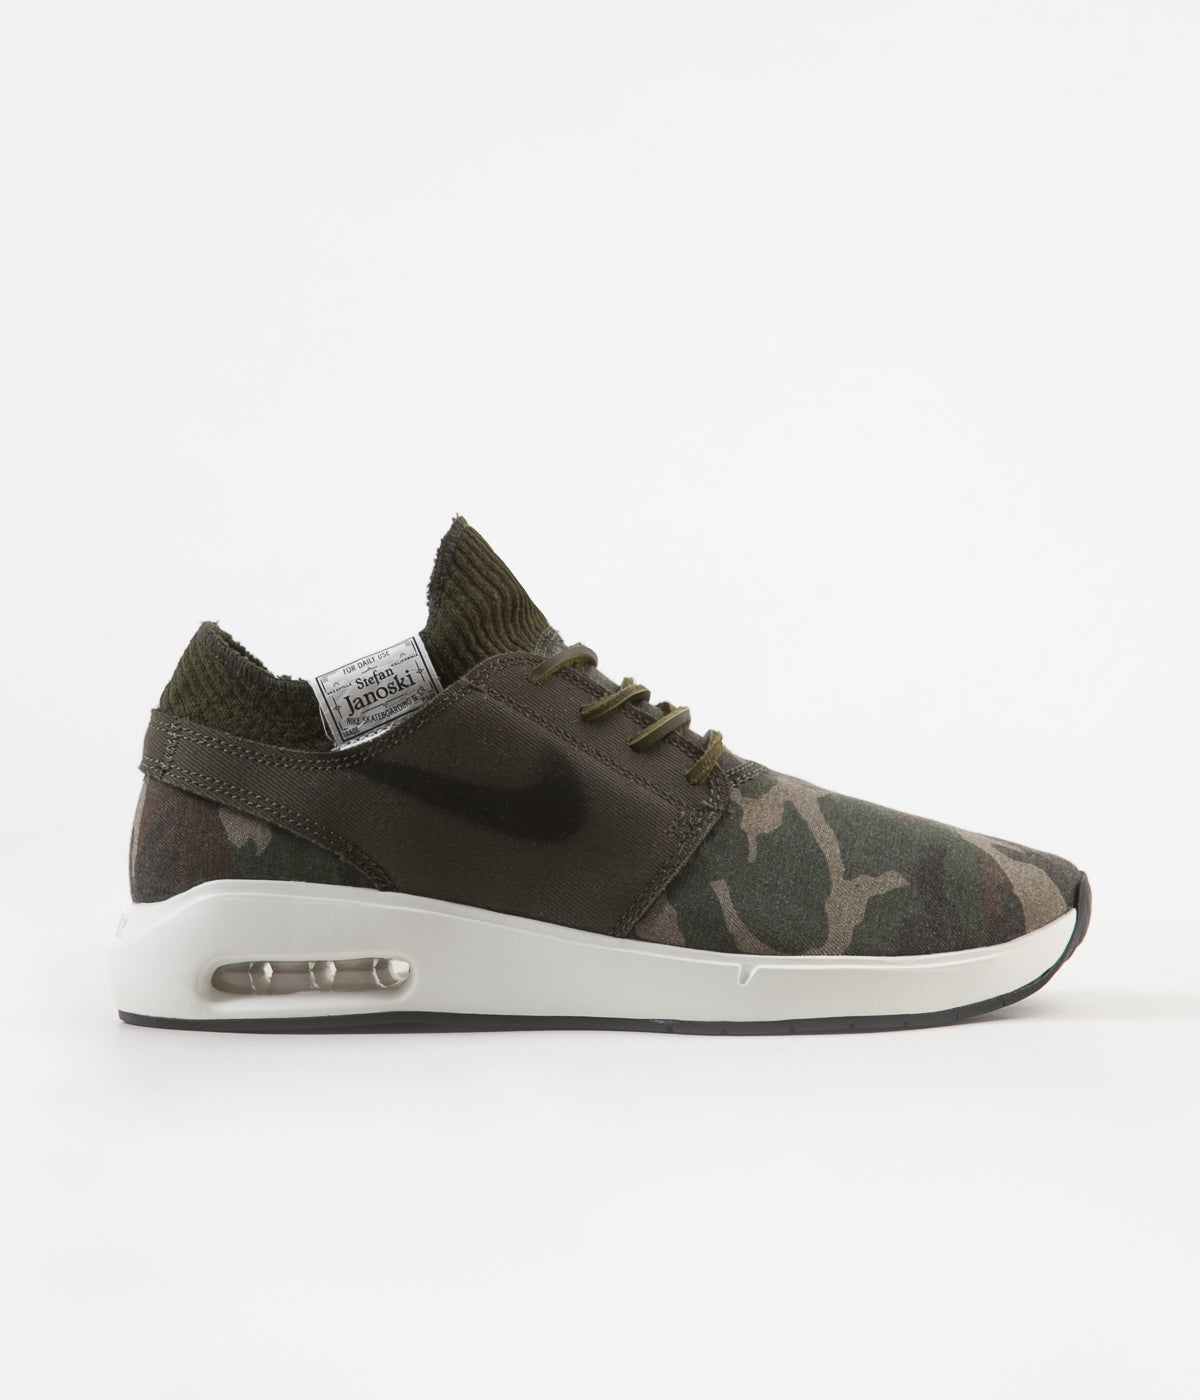 Nike SB Air Max Janoski 2 Premium Shoes (iguana black cargo